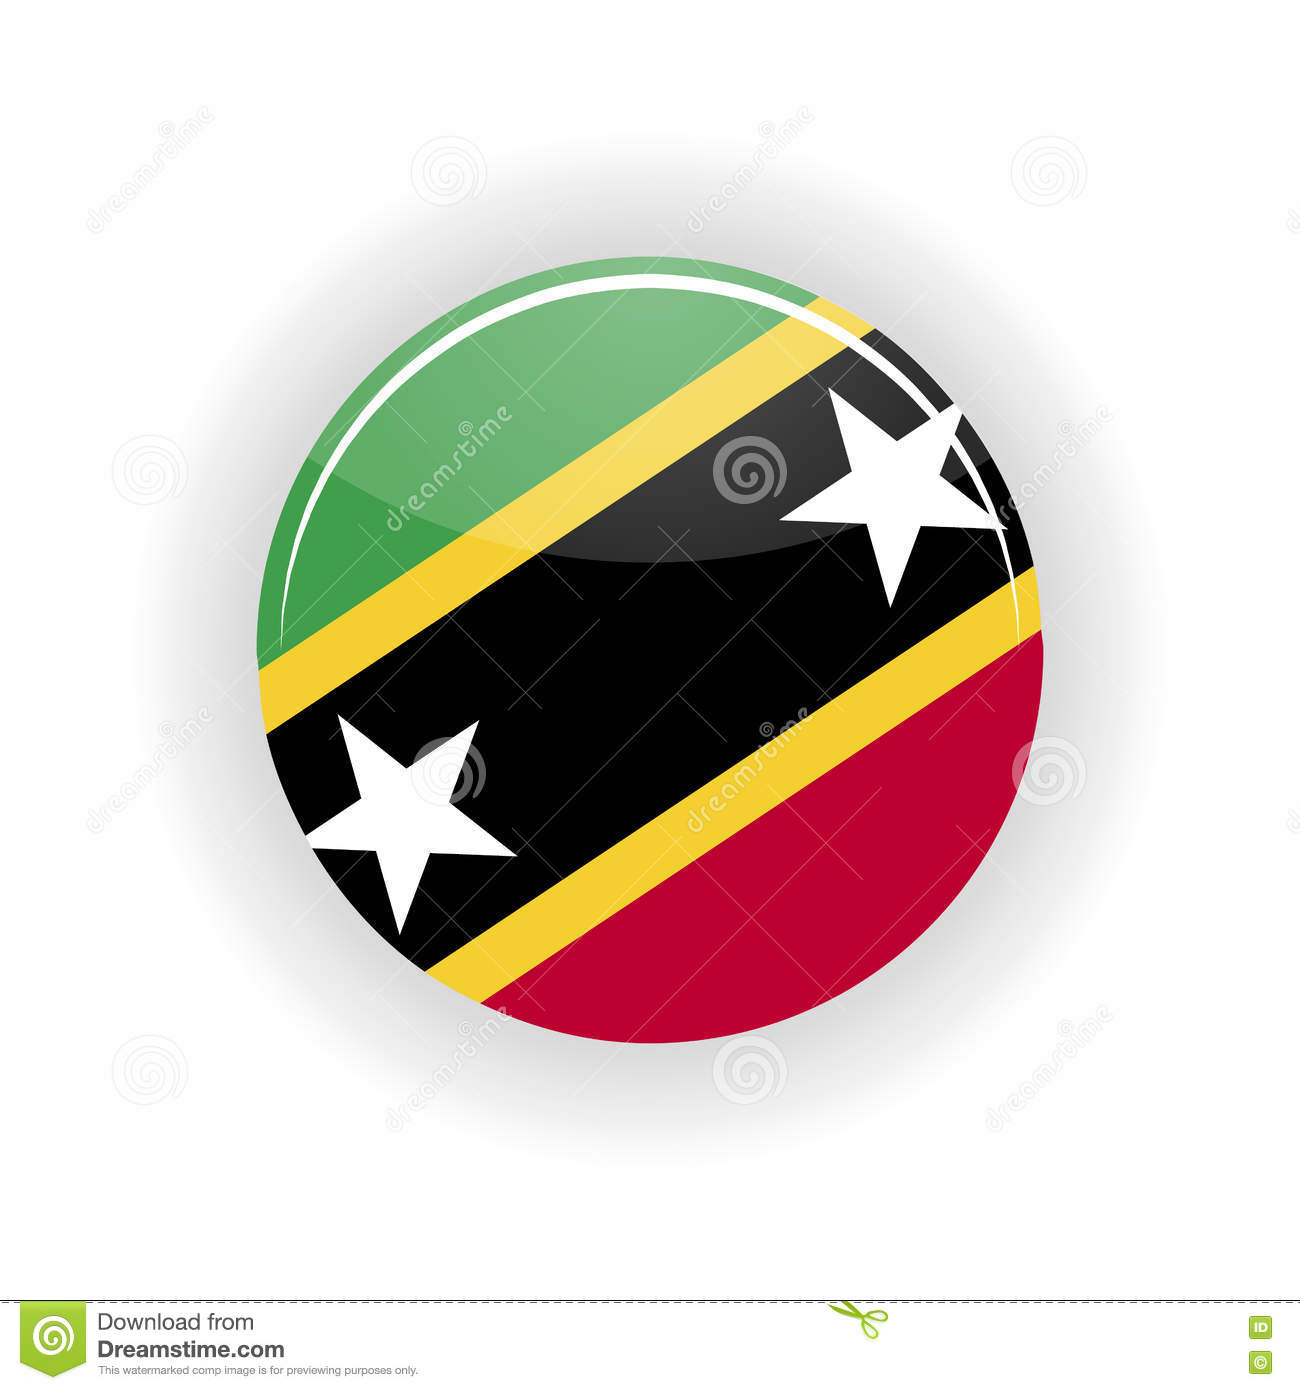 saint kitts and nevis icon circle stock vector illustration of